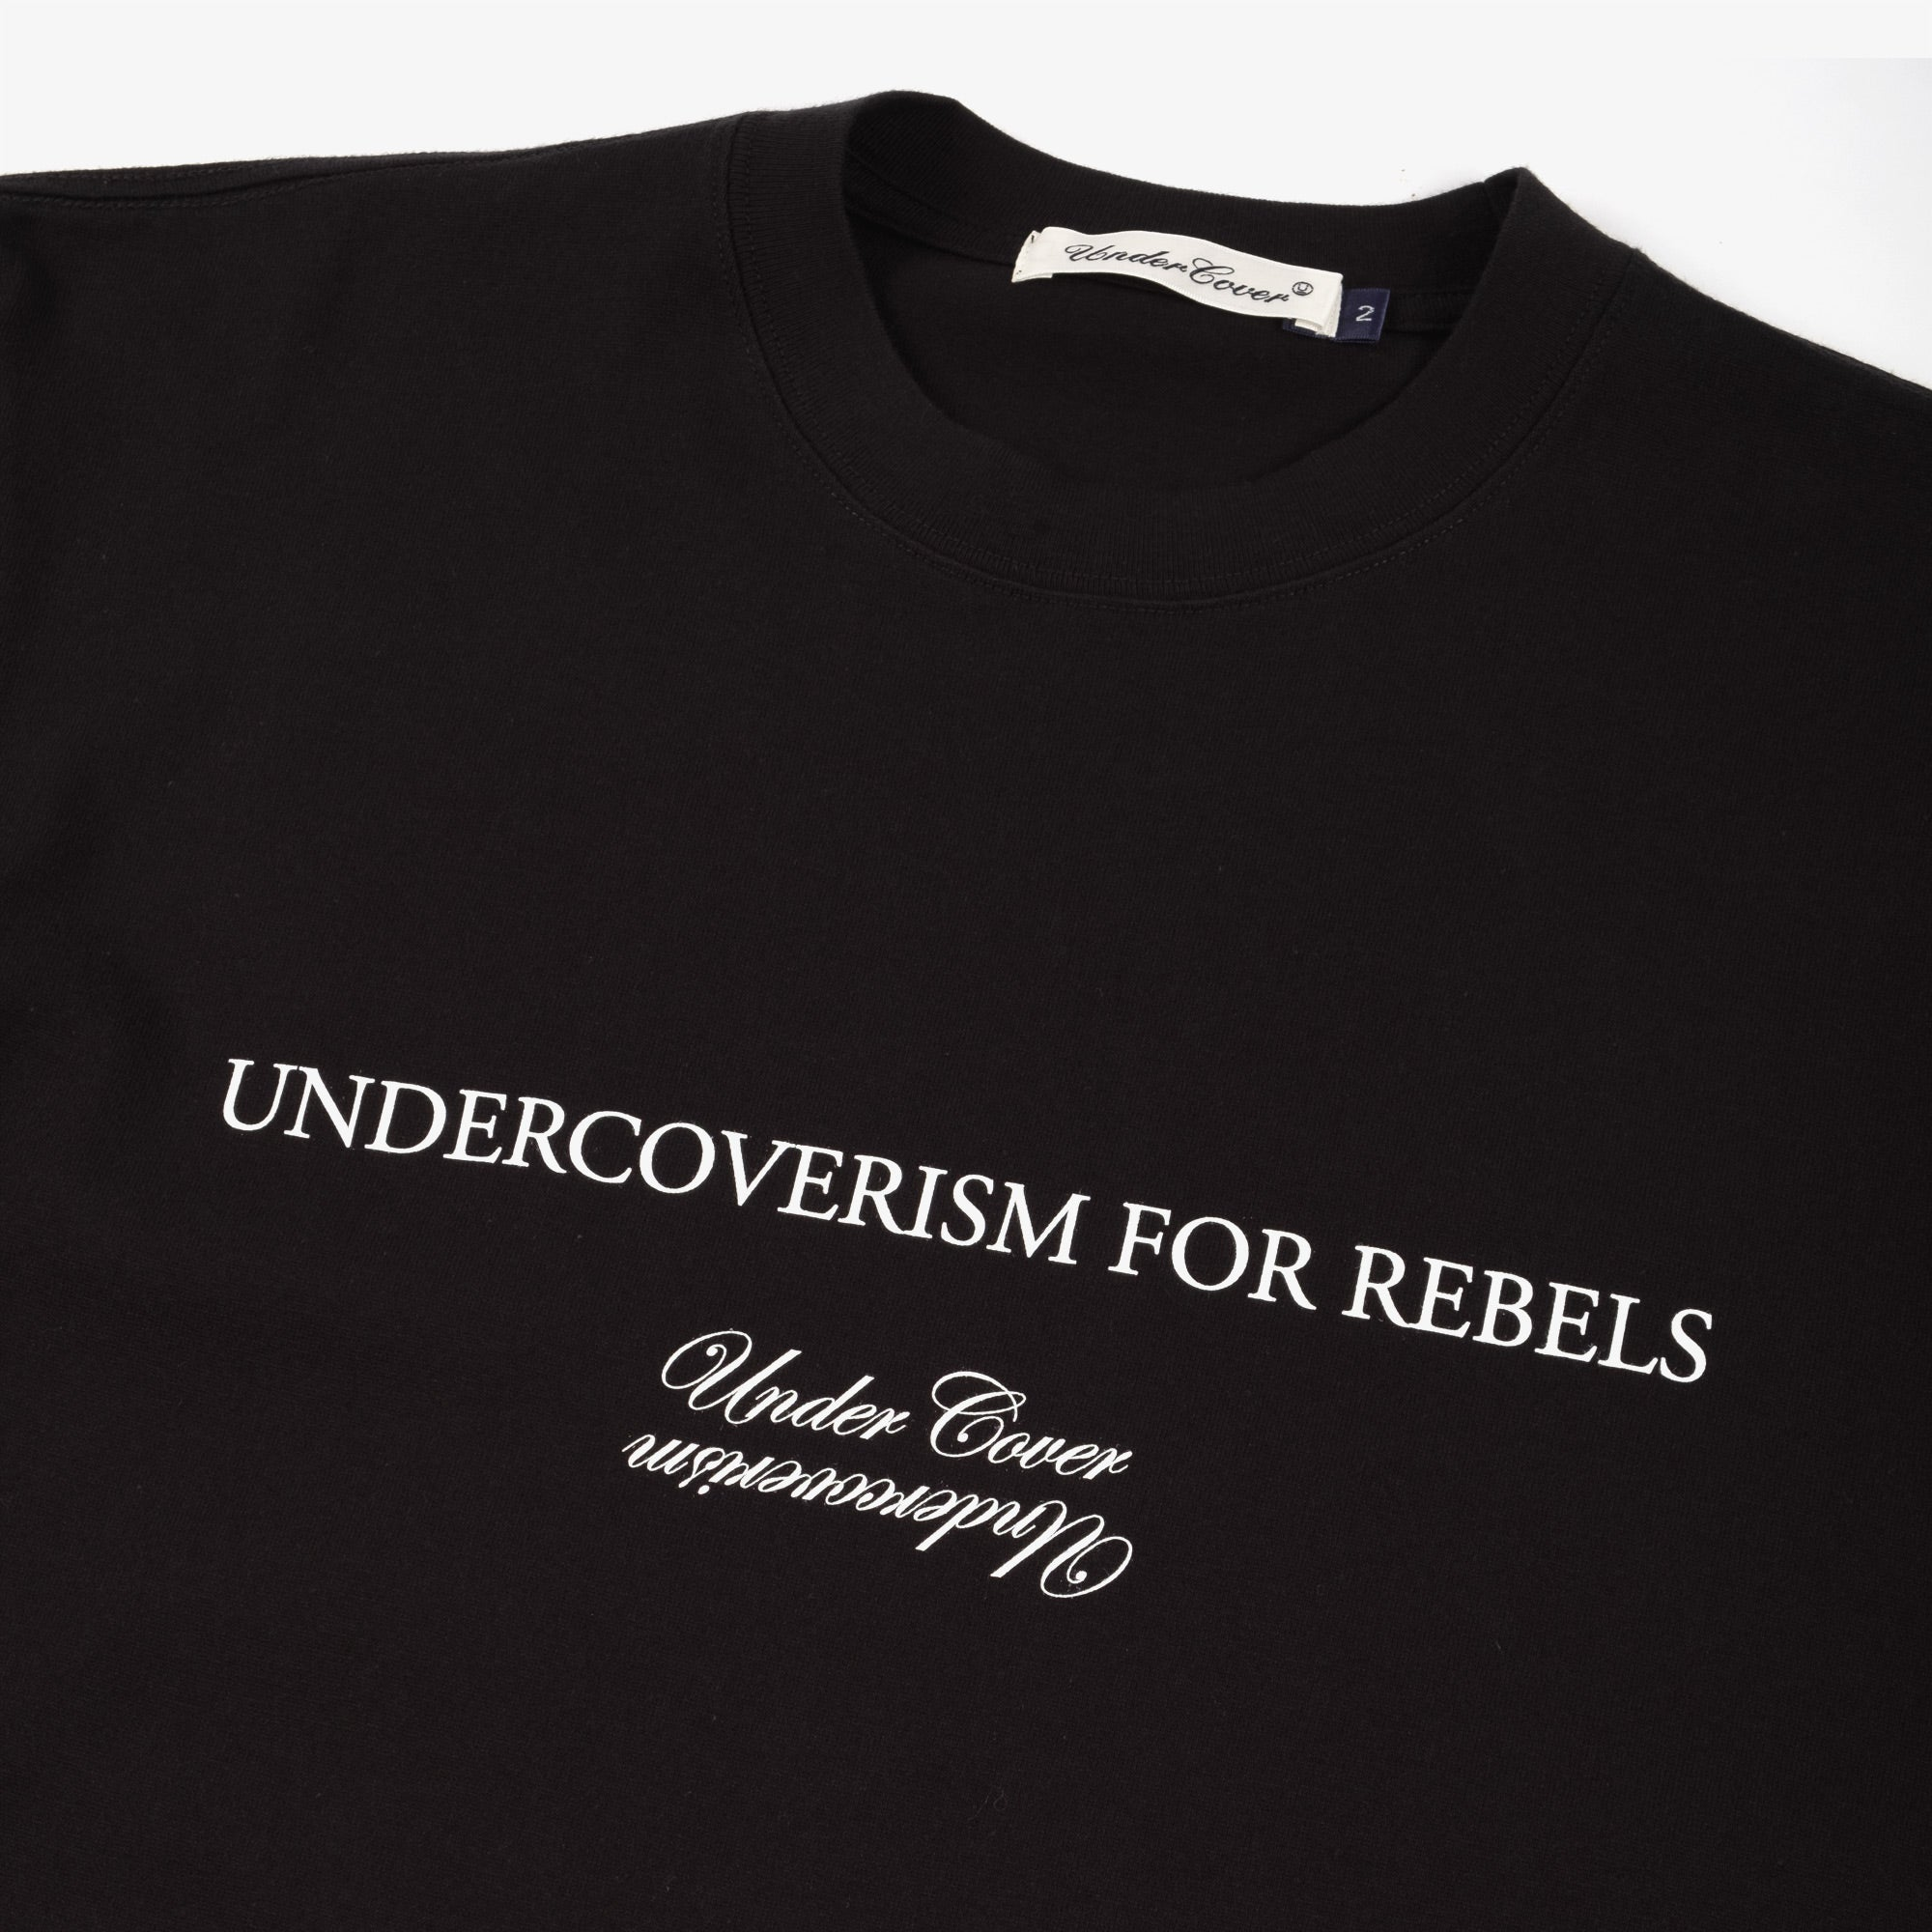 Undercover Blindfold Tee UC2A3807 - Black 3